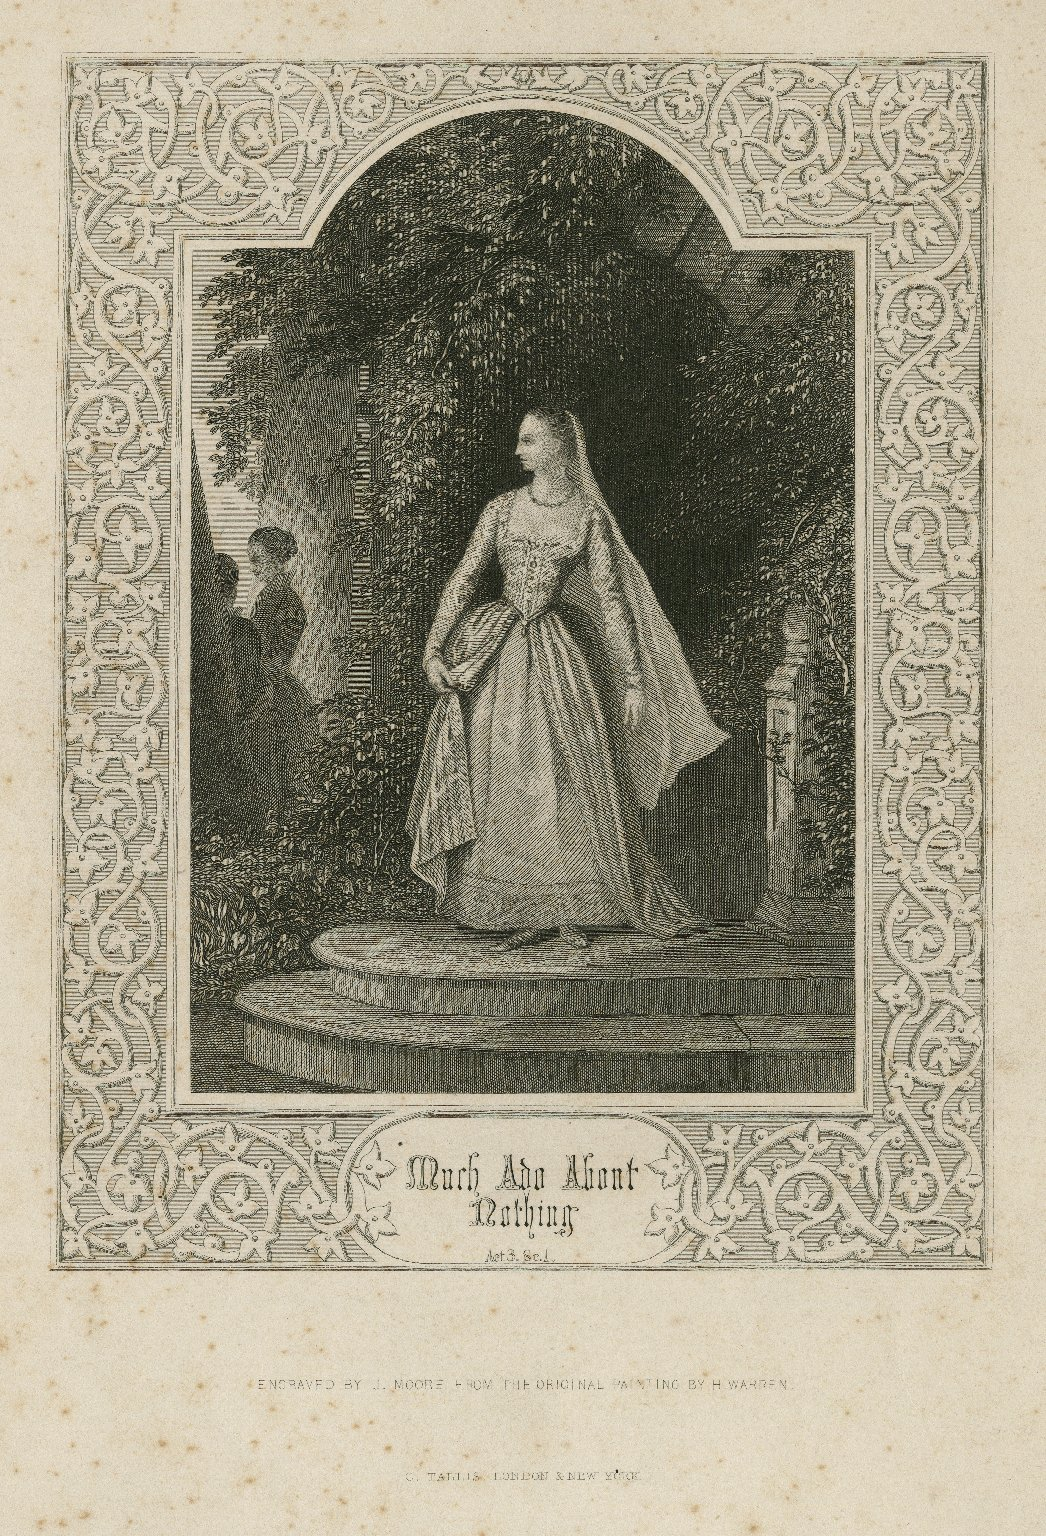 Much ado about nothing, act 3, sc. 1 [graphic] / engraved by J. Moore from the original painting by H. Warren.